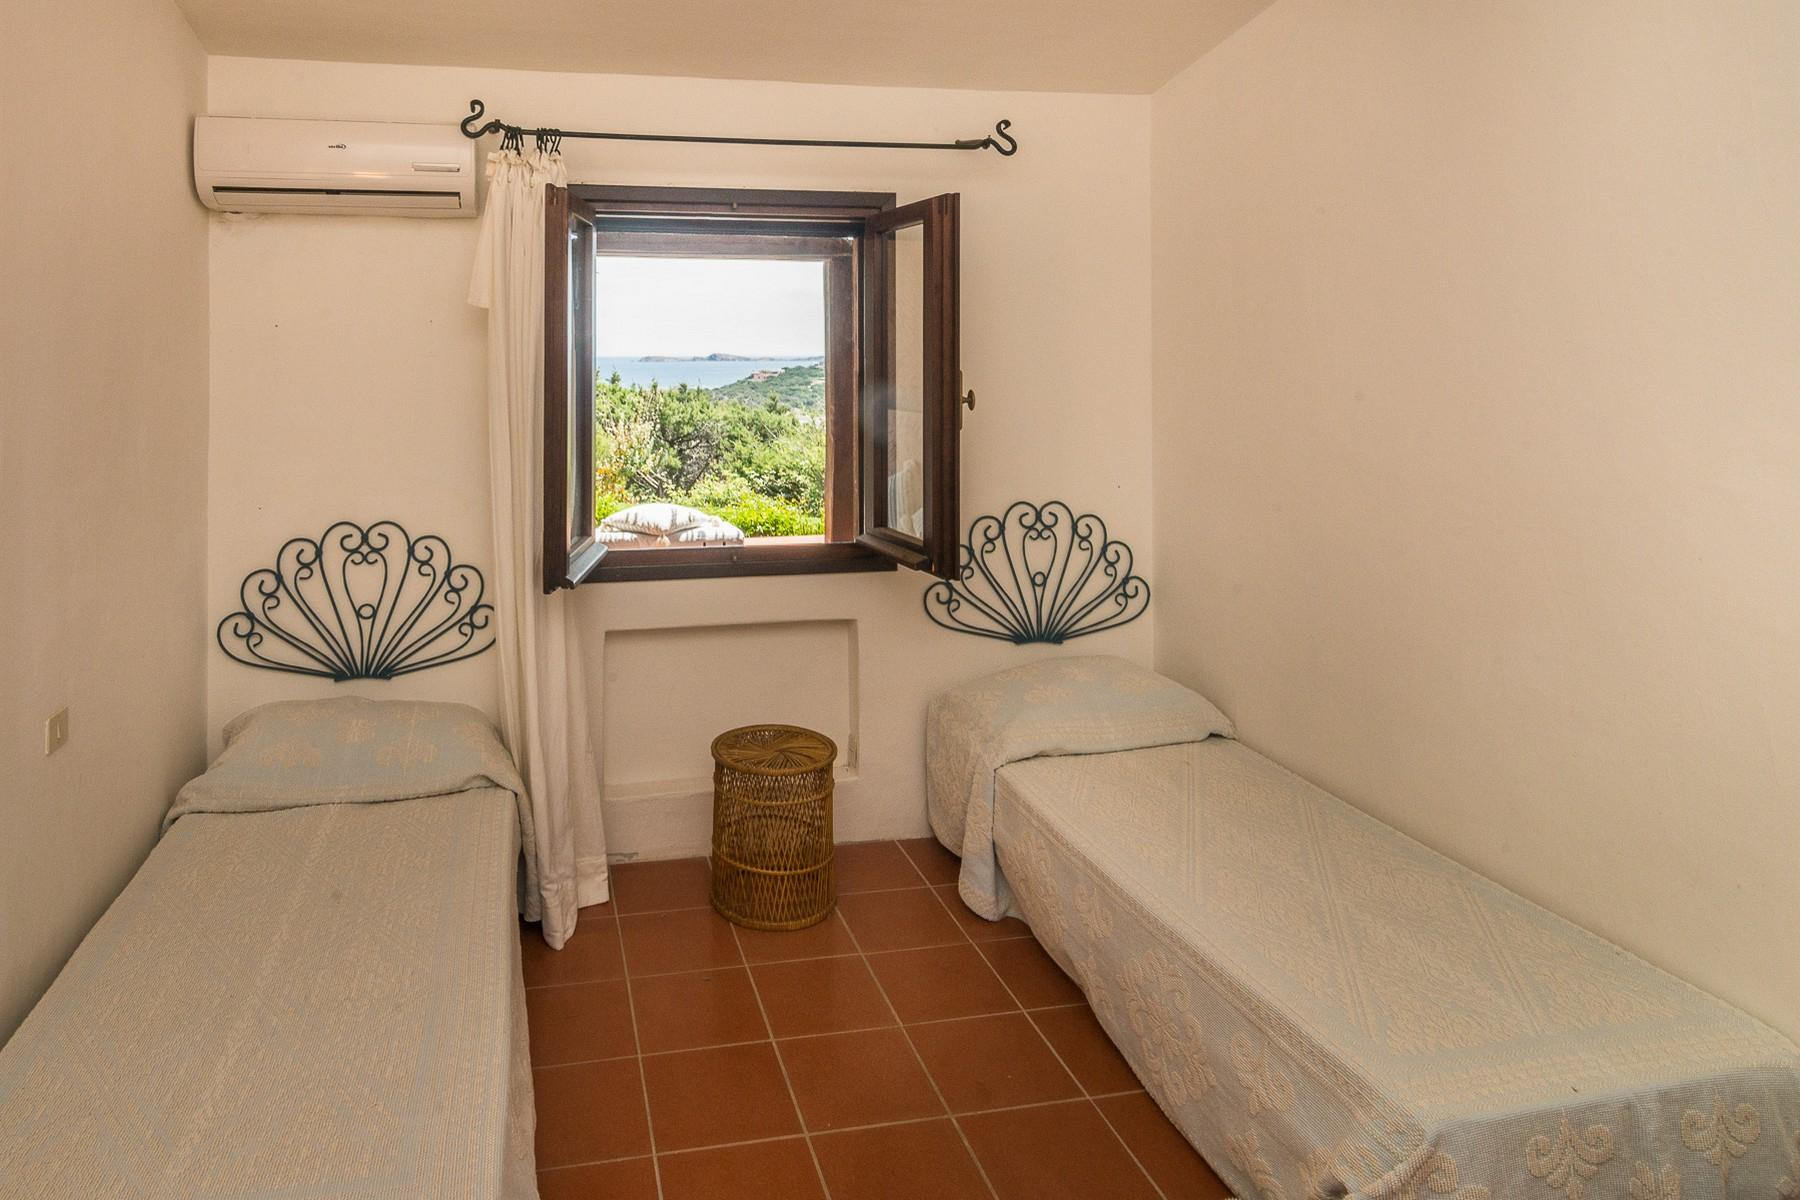 Porto Cervo Cala Granu Delightful Apartment a few steps from the beach - 16